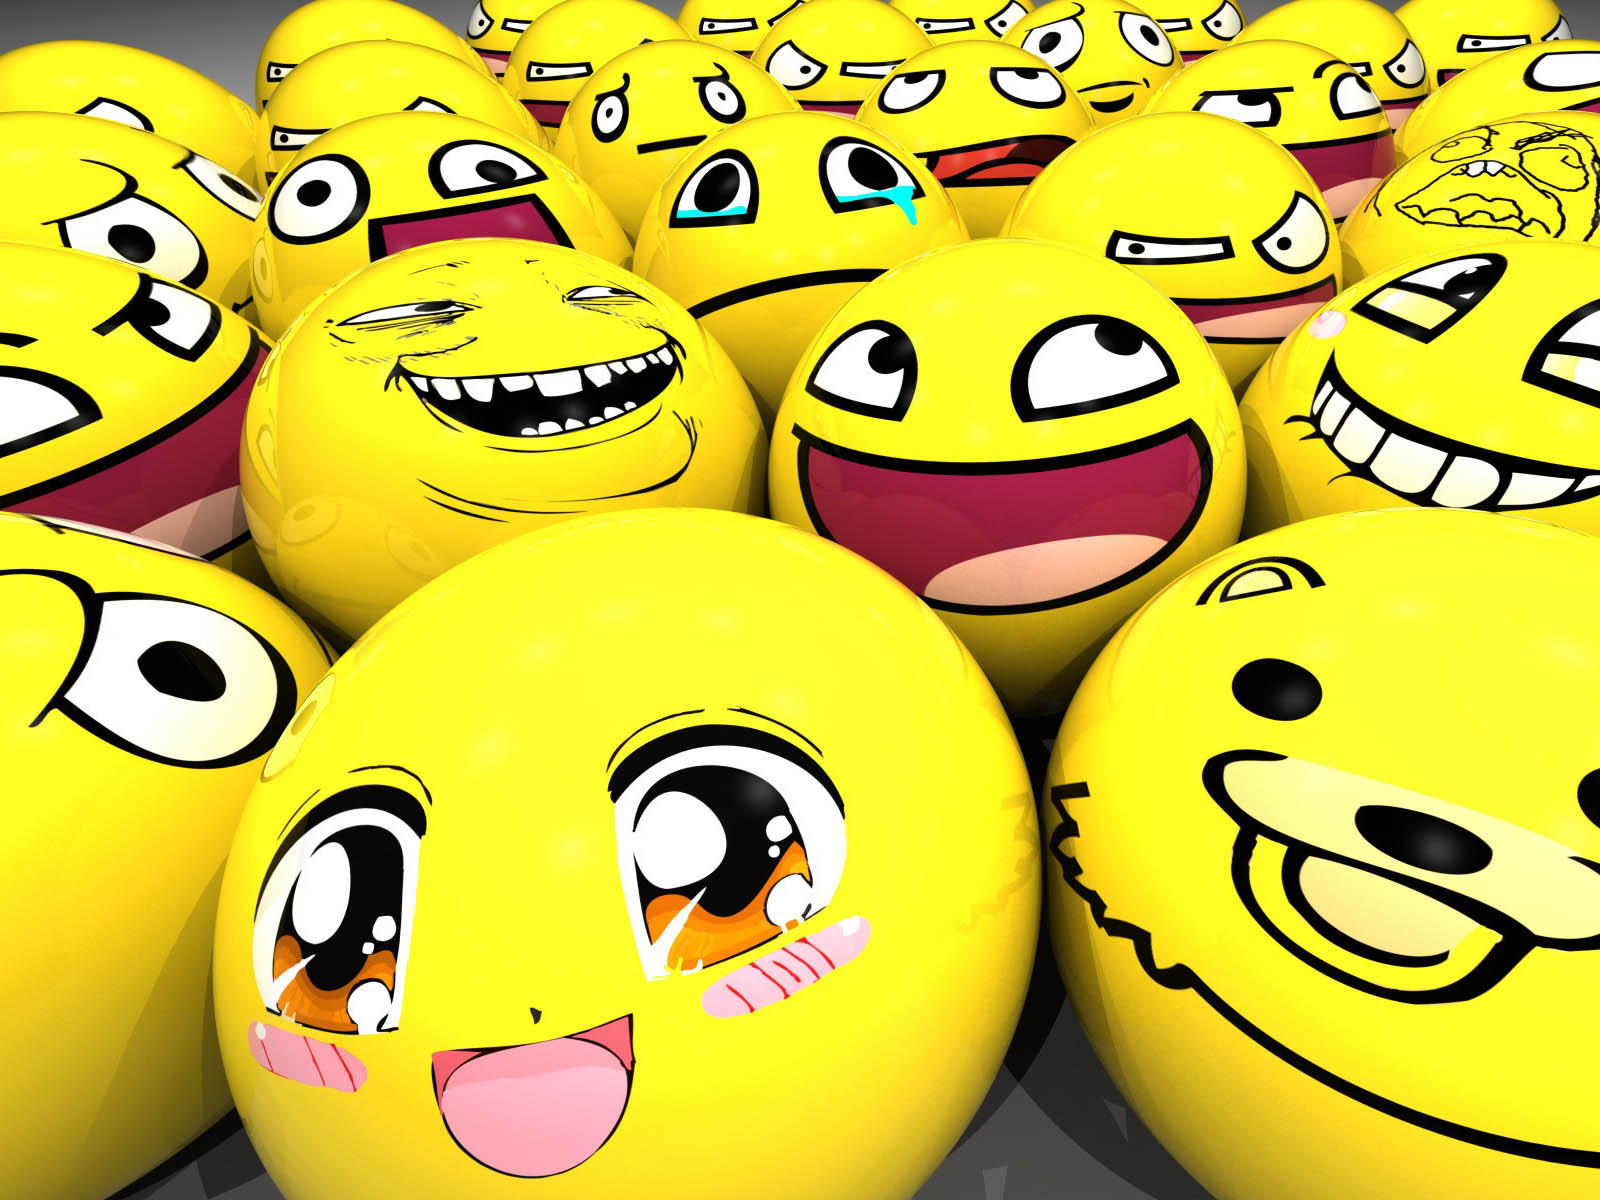 Wallpapers Smilies